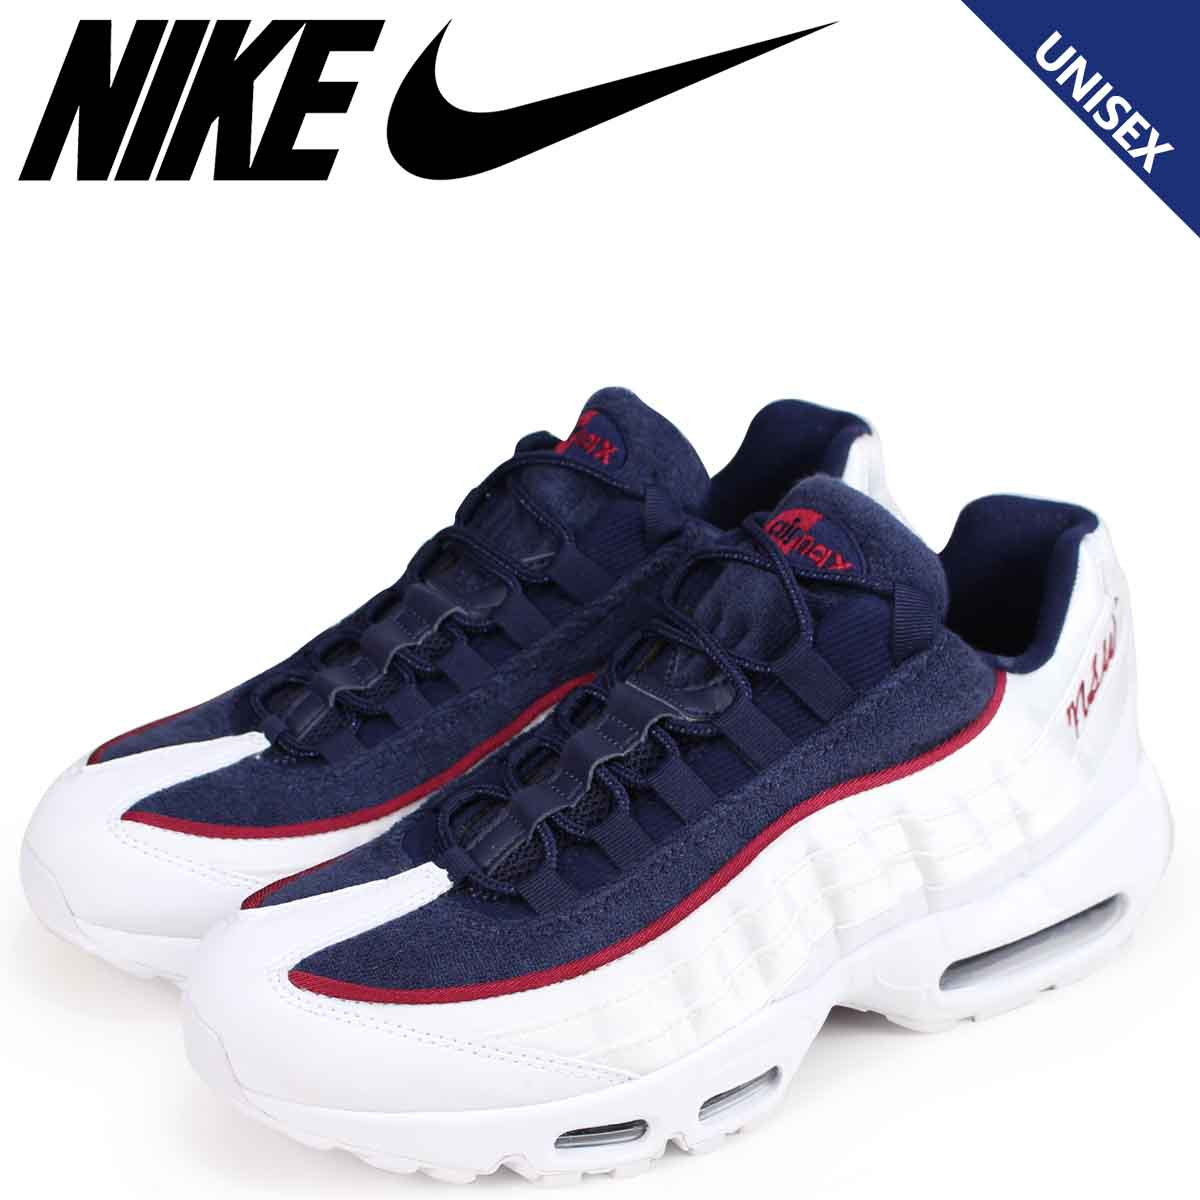 size 40 8ba00 82332 NIKE Kie Ney AMAX 95 sneakers Lady s men WMNS AIR MAX 95 LX AA1103-100  white  load planned Shinnyu load in reservation product 8 20 containing